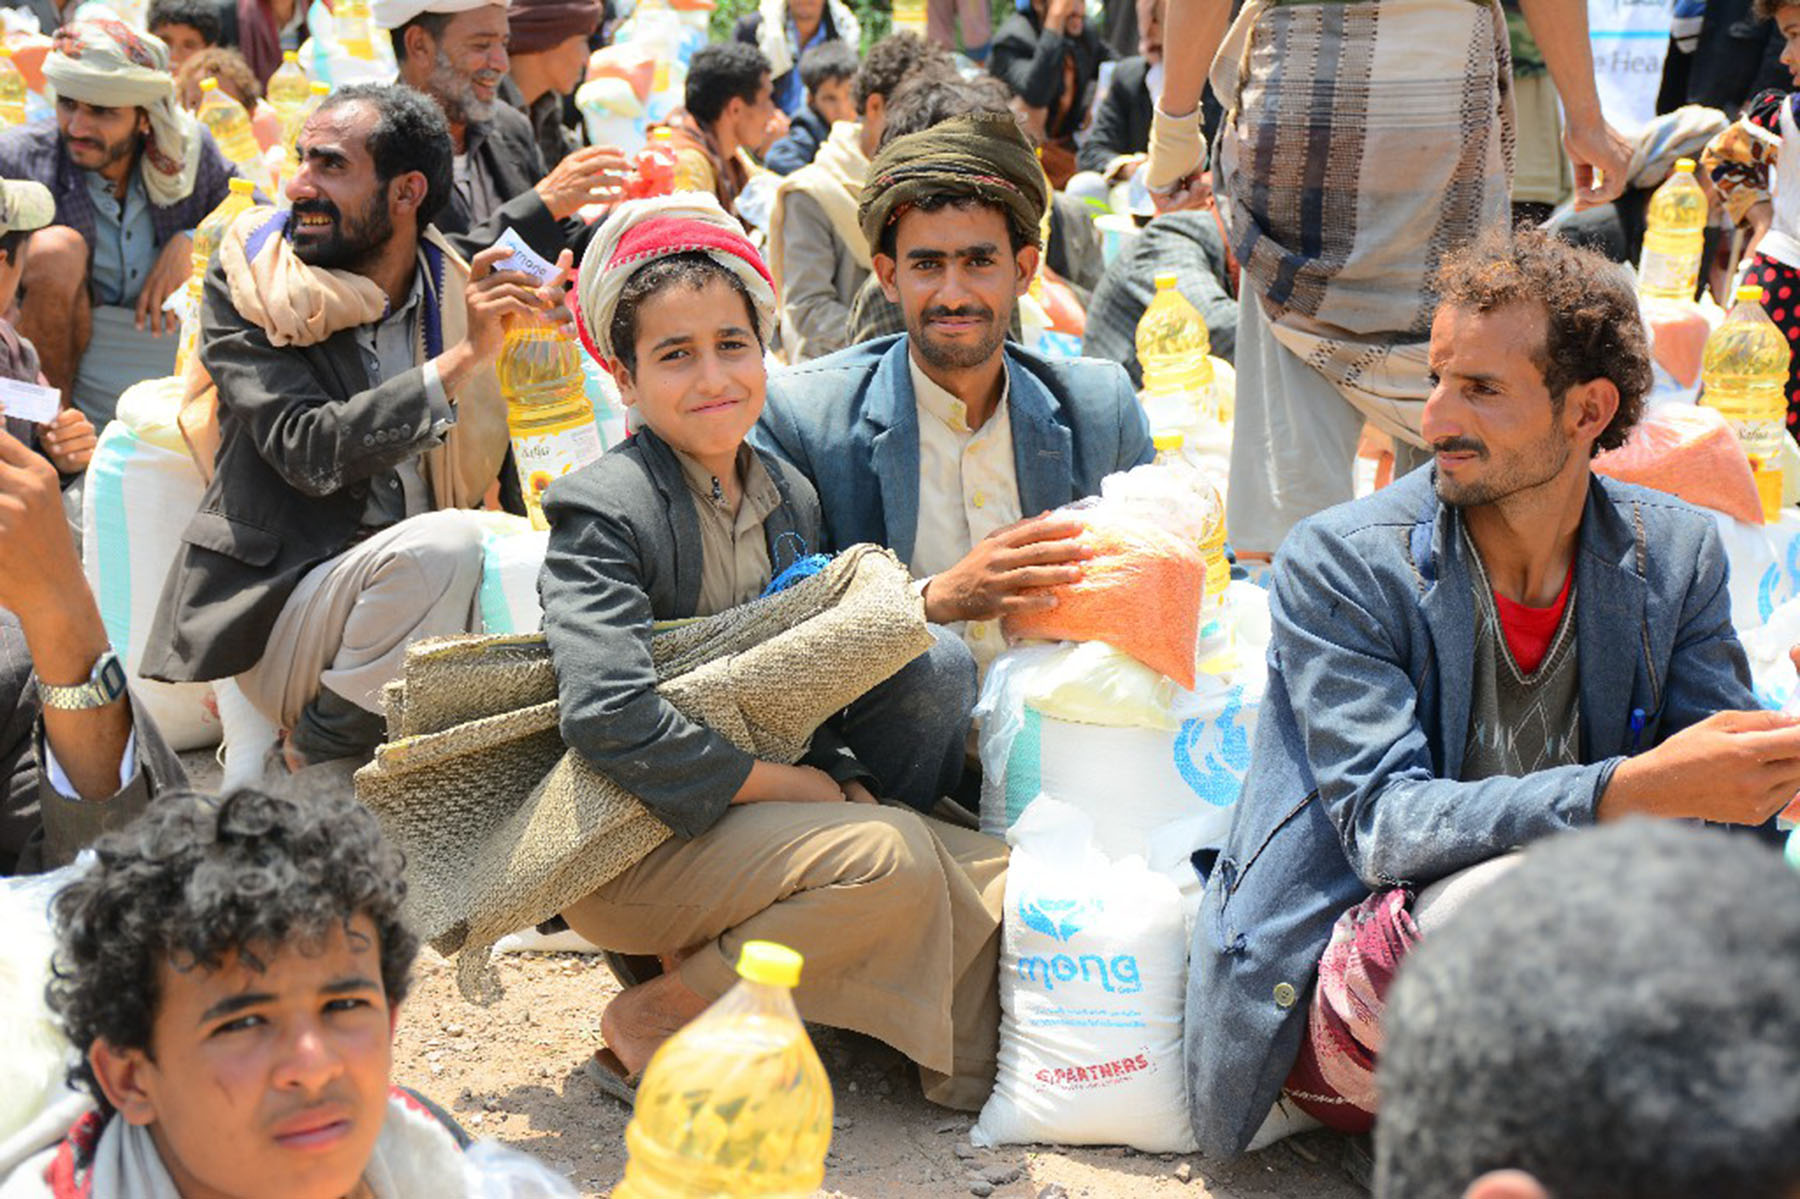 Families wait with parcels in Sana'a, Yemen. (Partners Relief & Development)